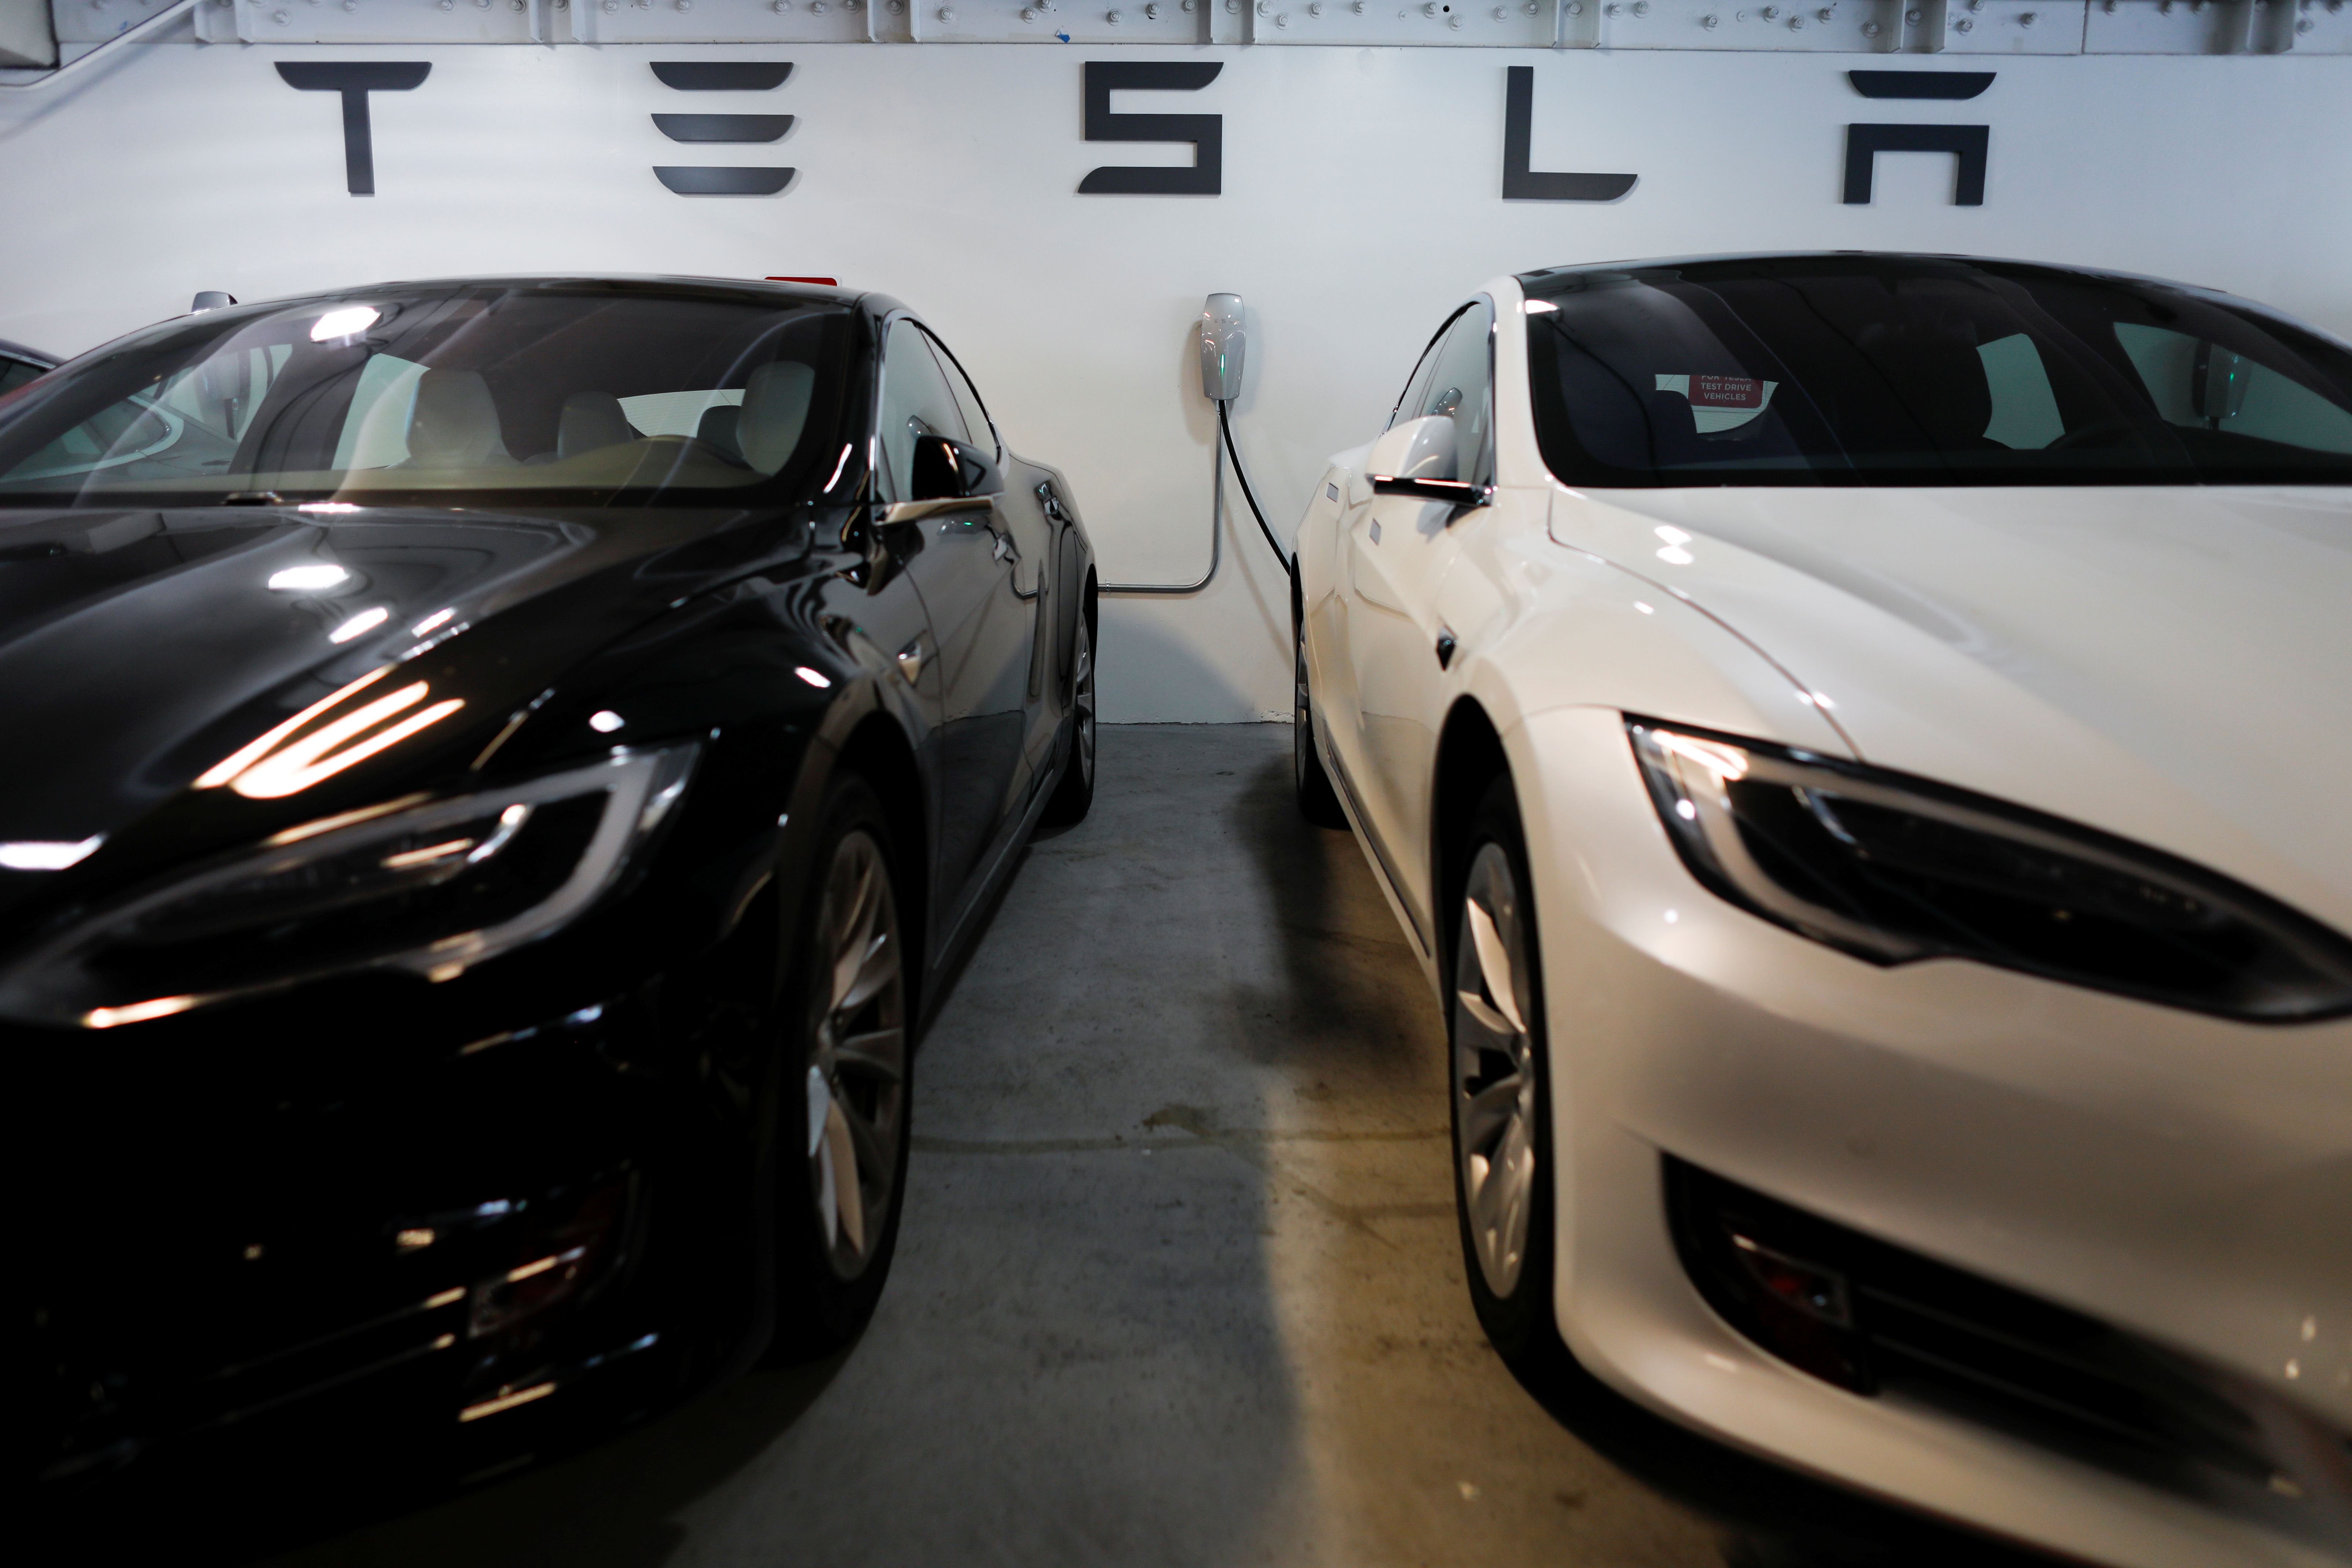 Tesla Model 3s are shown charging in an underground parking lot next to a Tesla store in San Diego,California, U.S., May 30, 2018. REUTERS/Mike Blake.